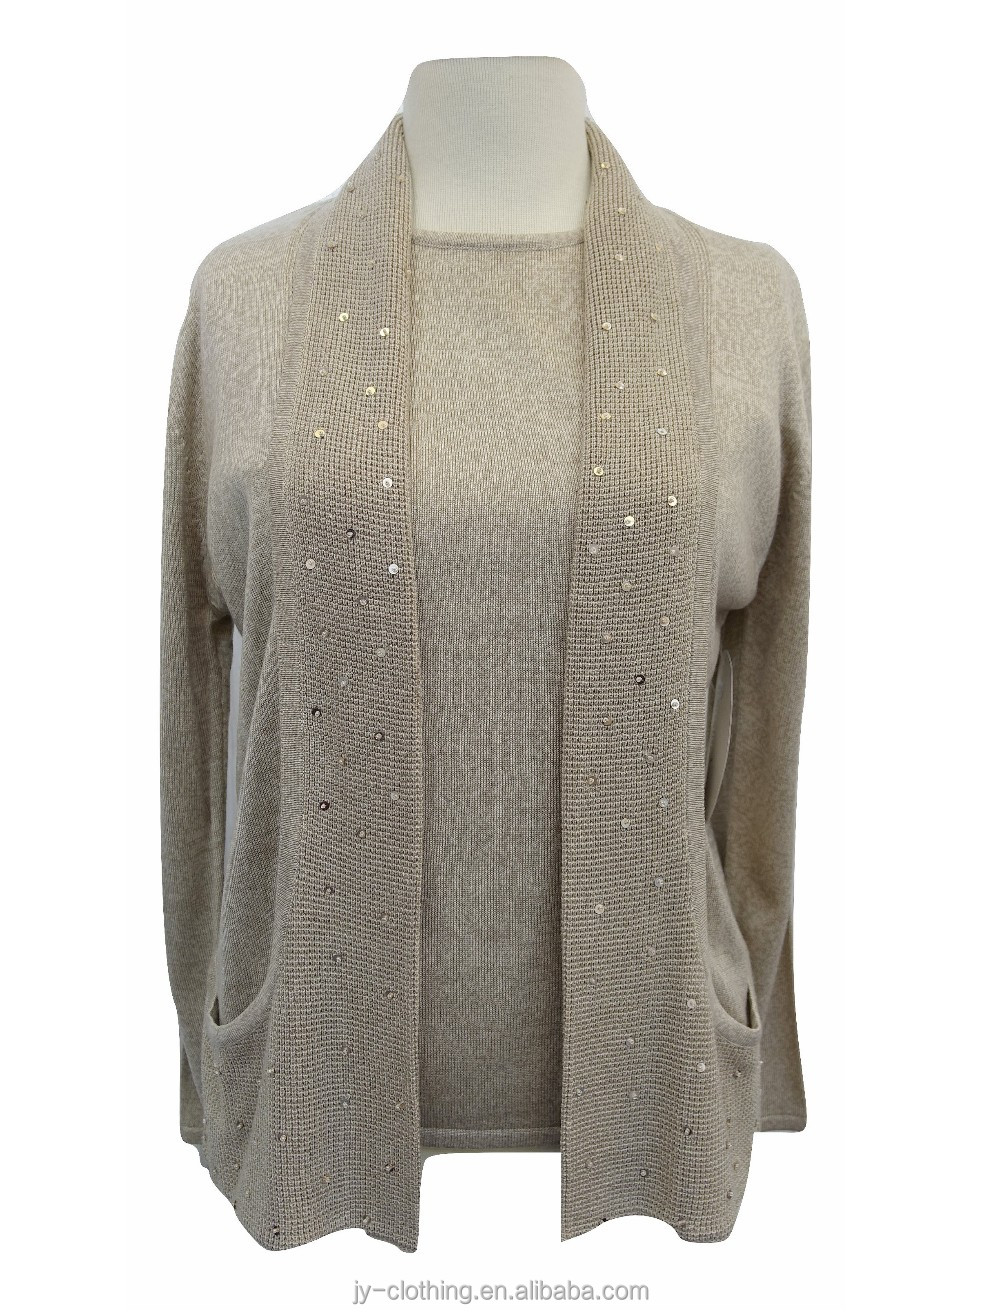 latest design long sleeve ladies cardigan melange effect knitted woman sweater with sequins beading